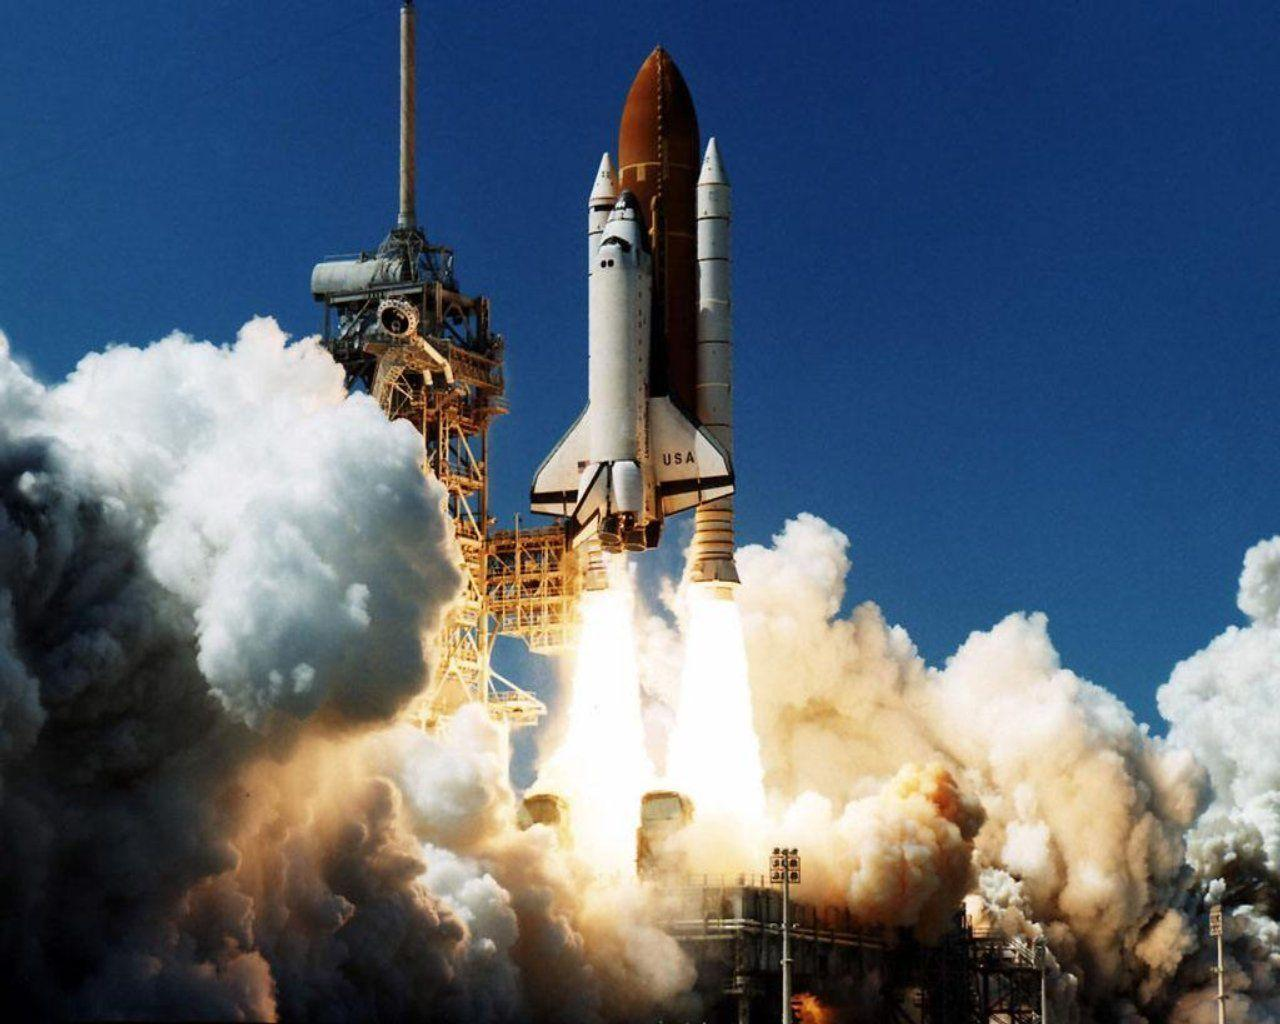 Space shuttle launch, Cape Canaveral Vacation Spots